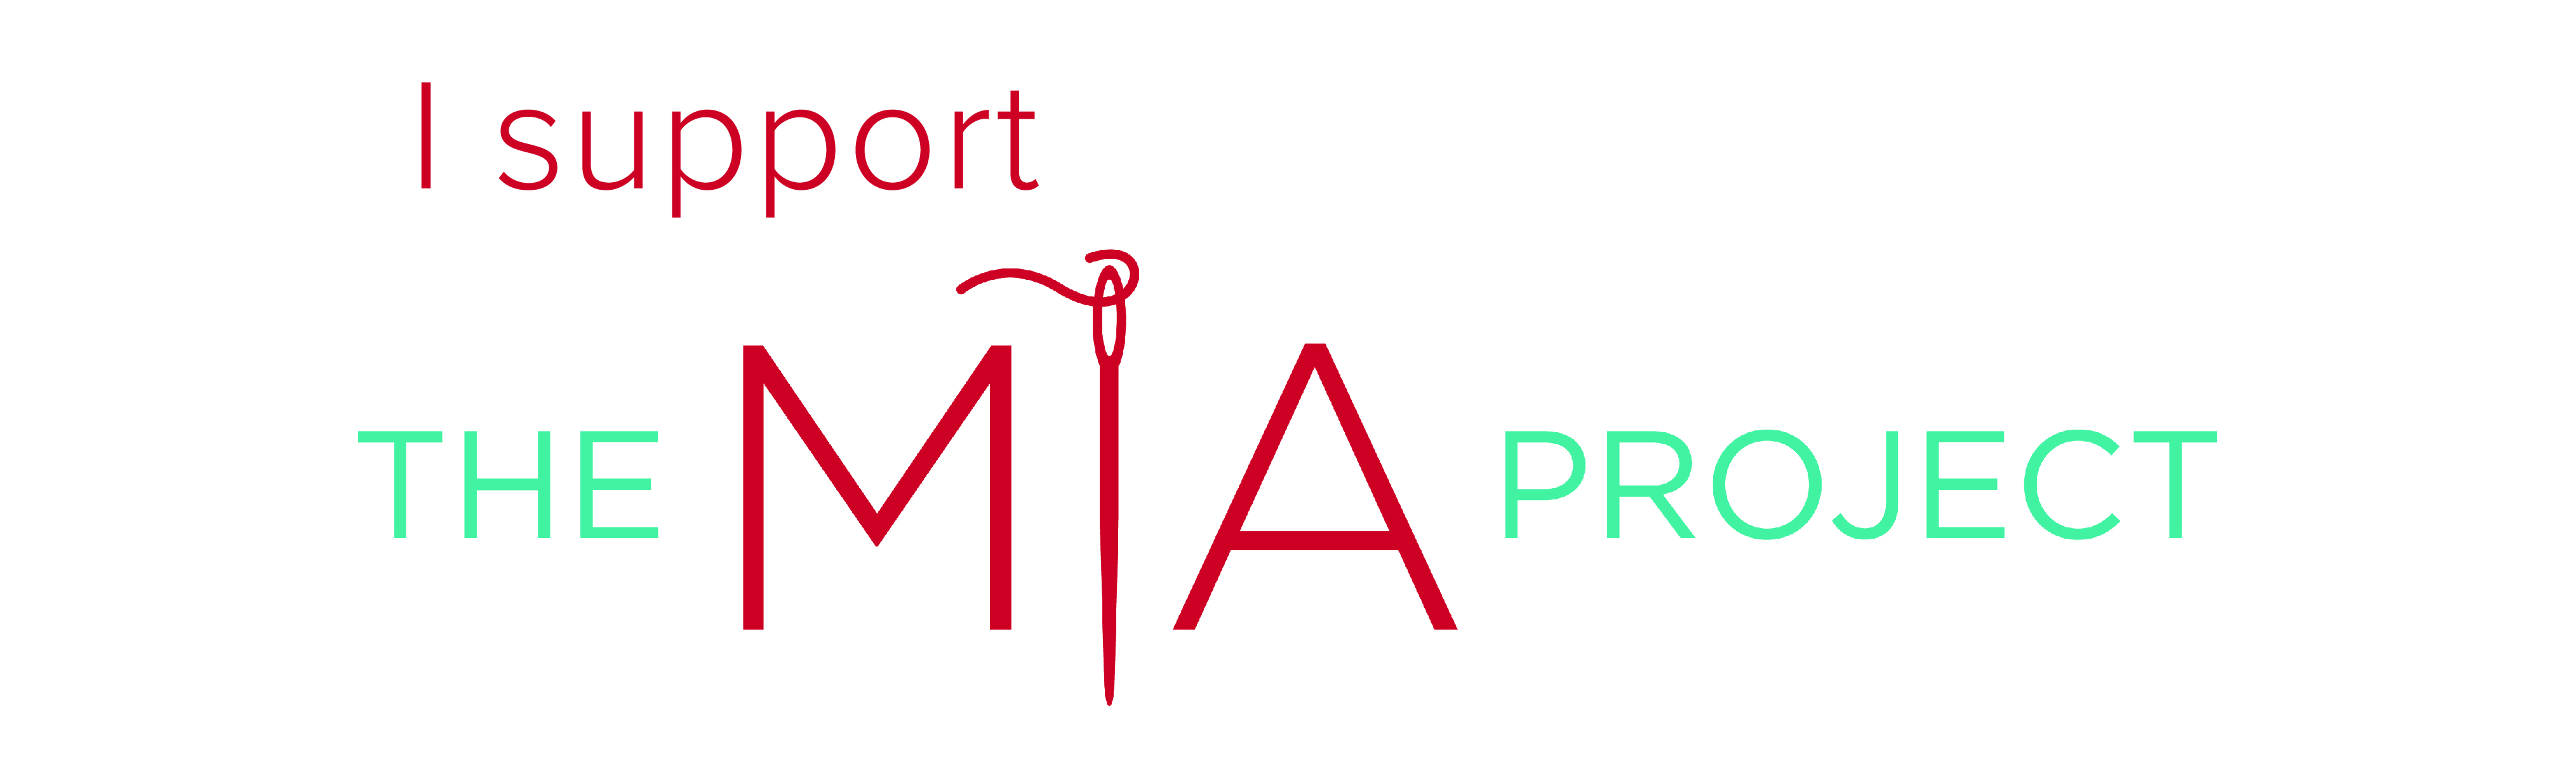 I support the MIA project